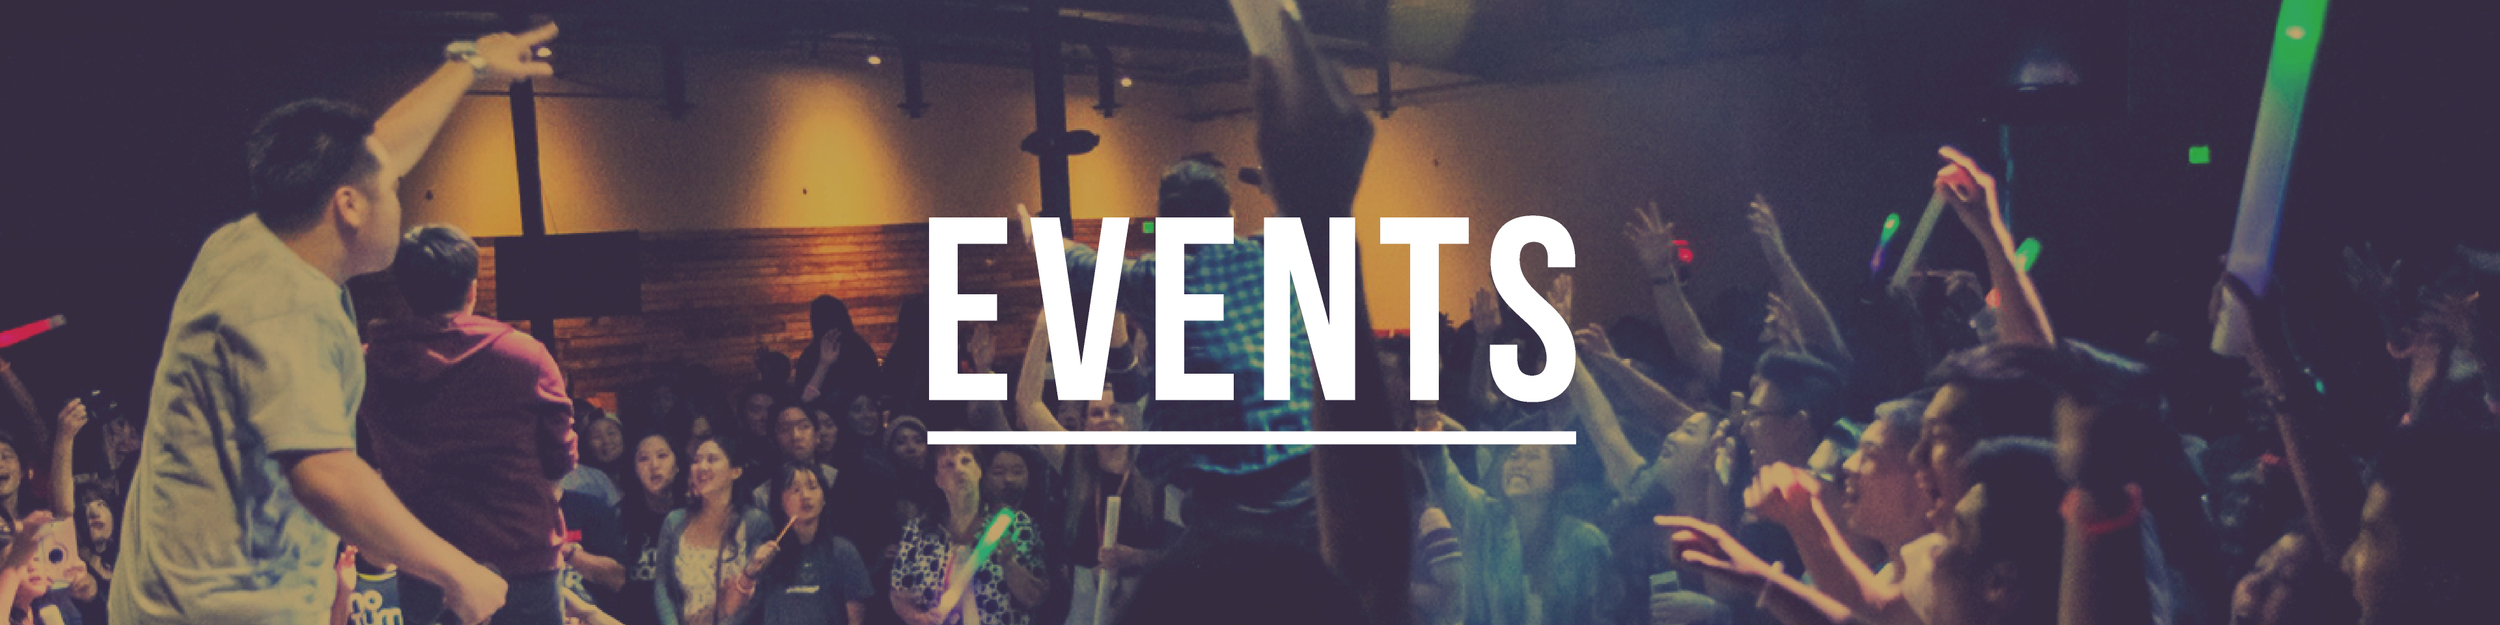 Good Fruit Co. - Upcoming Events, Concerts, Shows, and Tours